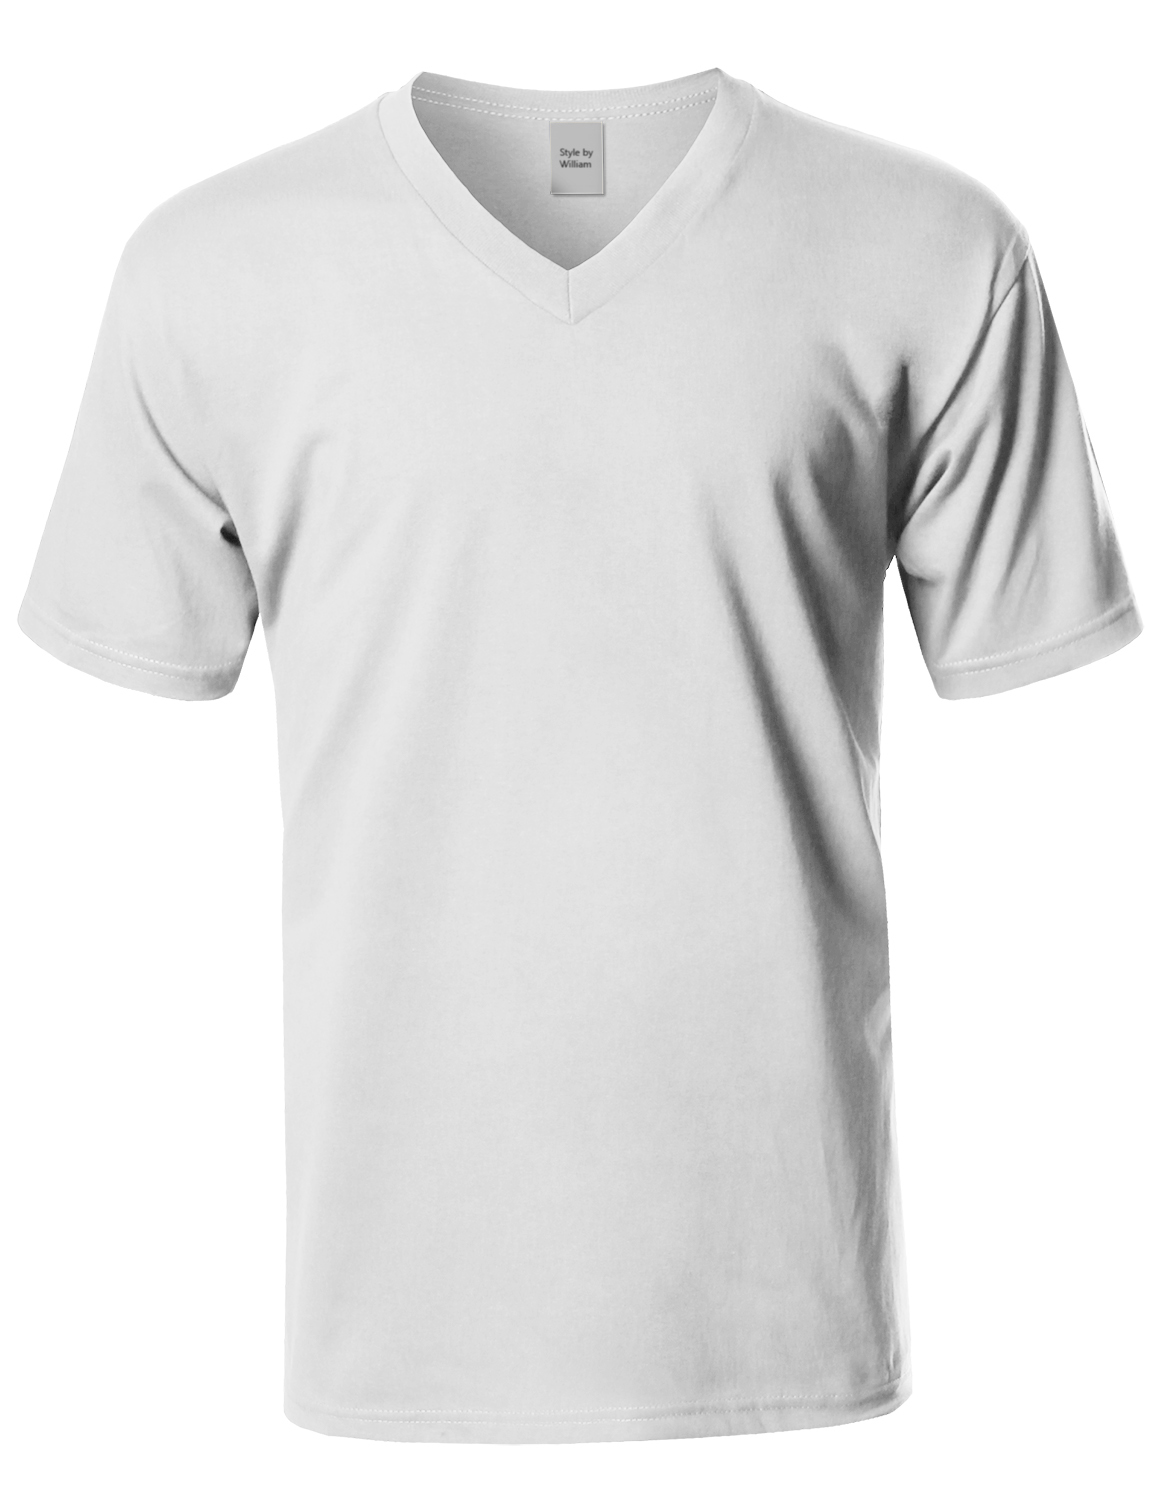 FashionOutfit Men/'s Basic Short Sleeve V-neck Cotton T-shirt S-5XL MADE IN USA